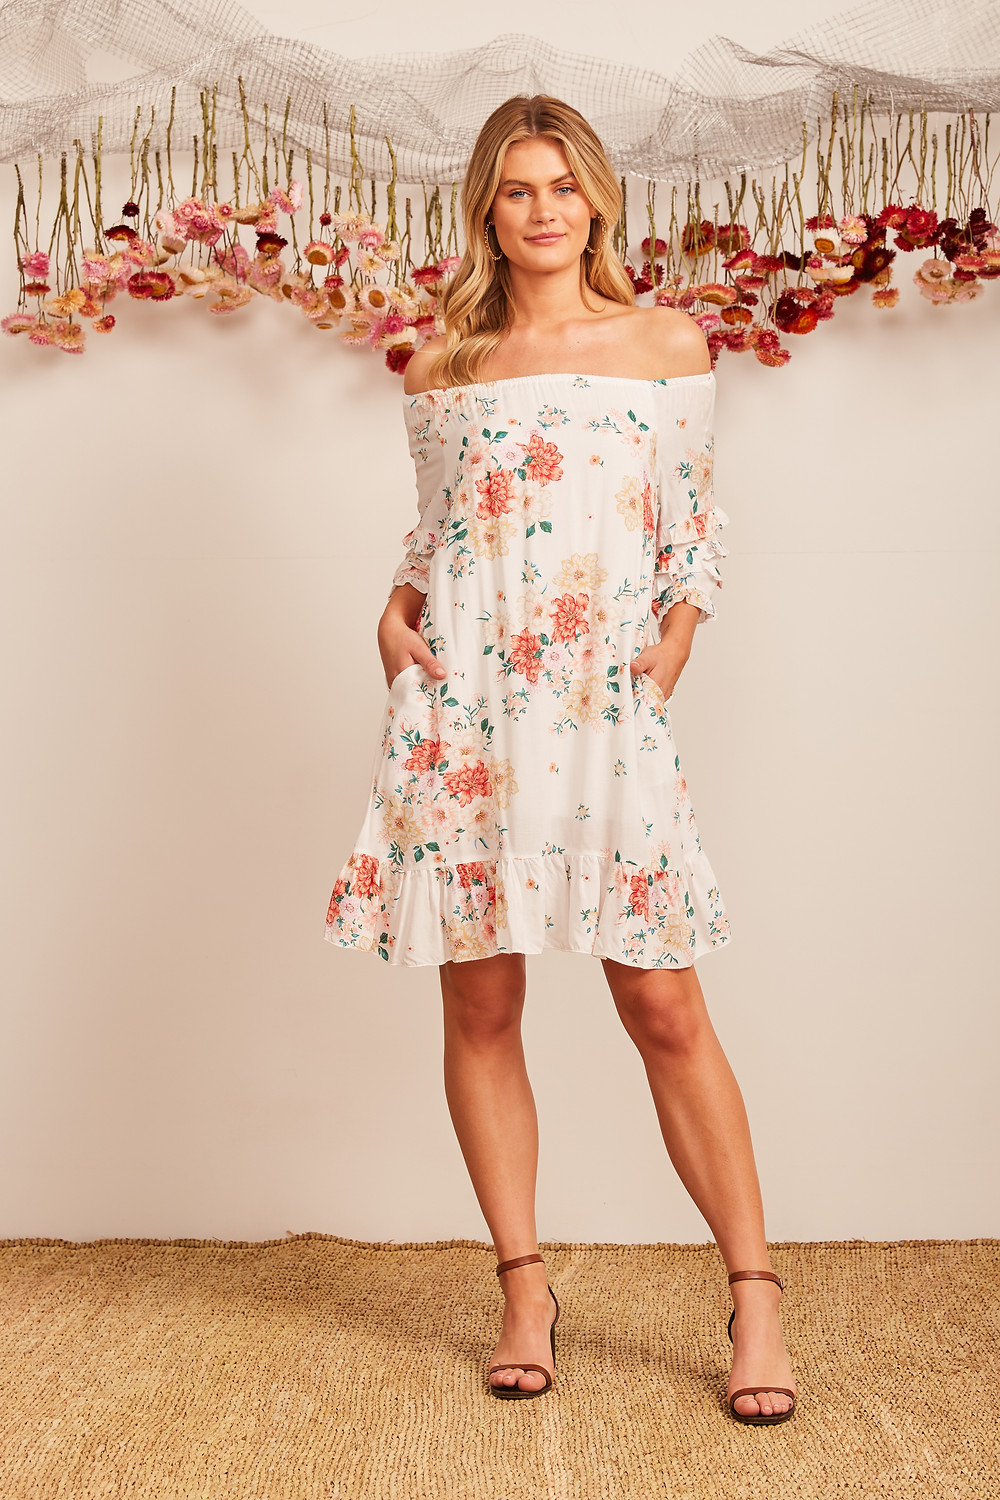 Elliott Dress In White With Pink Floral Special Price $34.00  $69.90